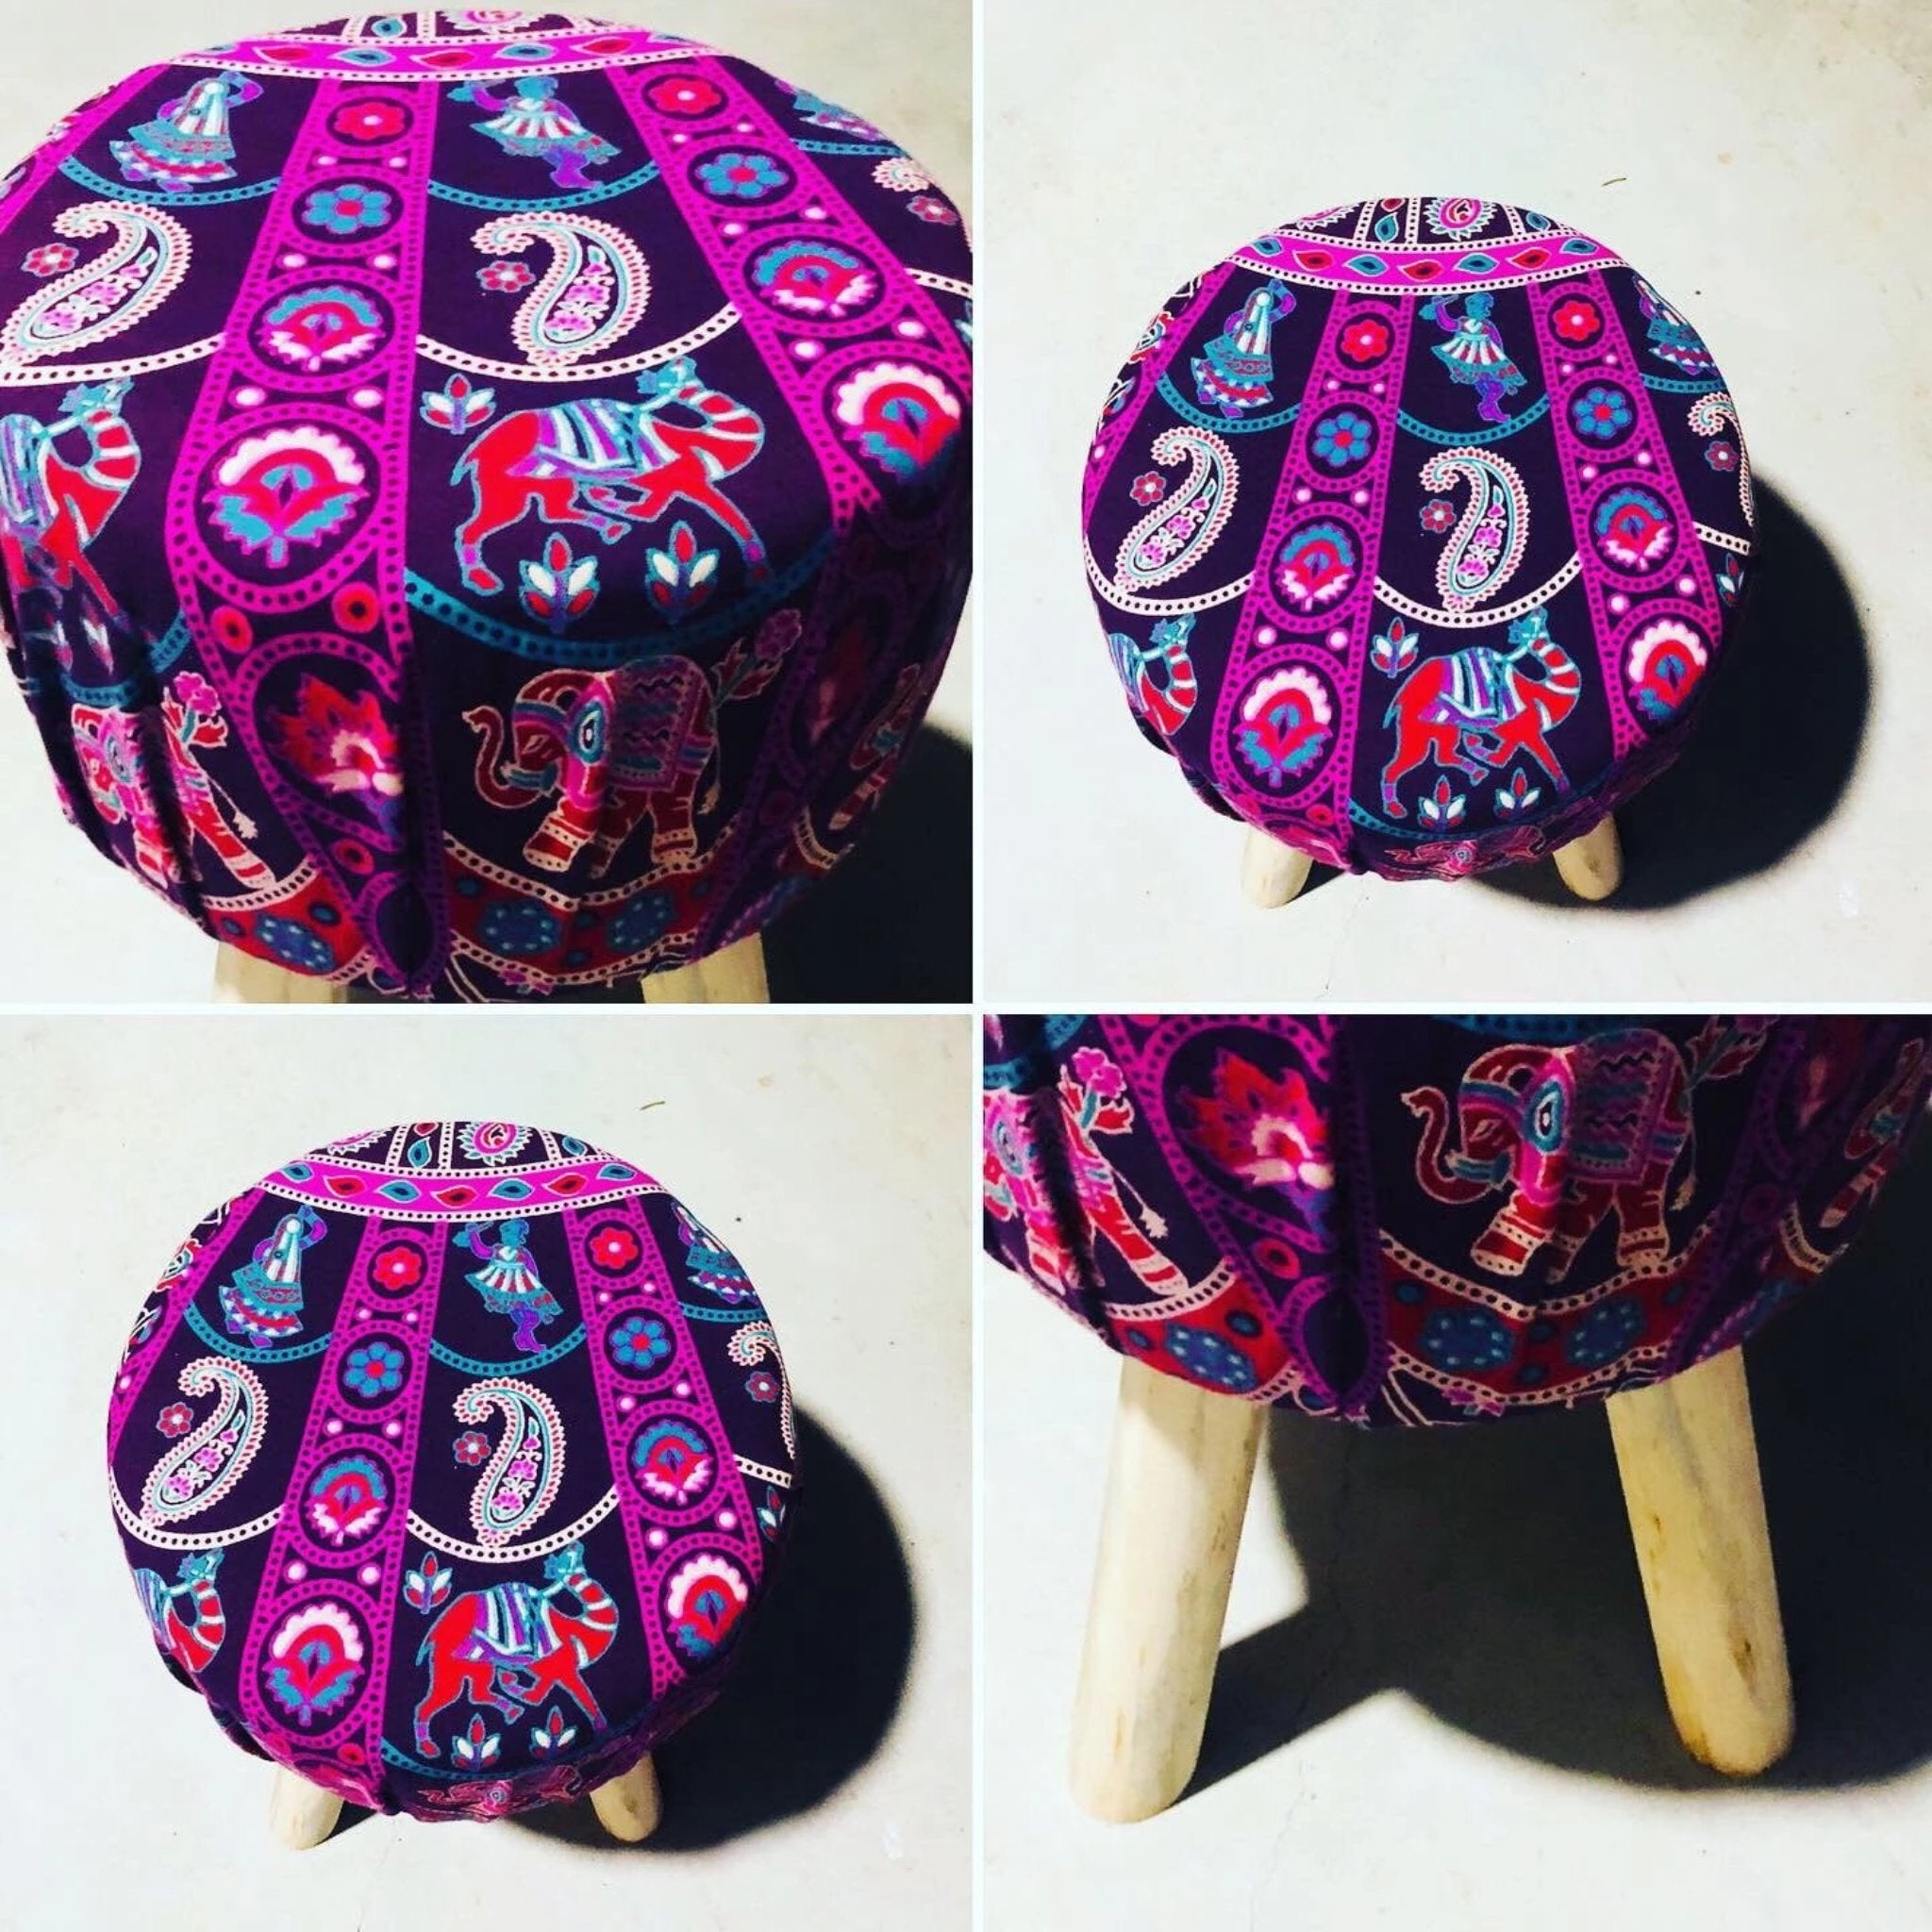 Purple Swirl Foot Stool.my-bohemian.myshopify.com